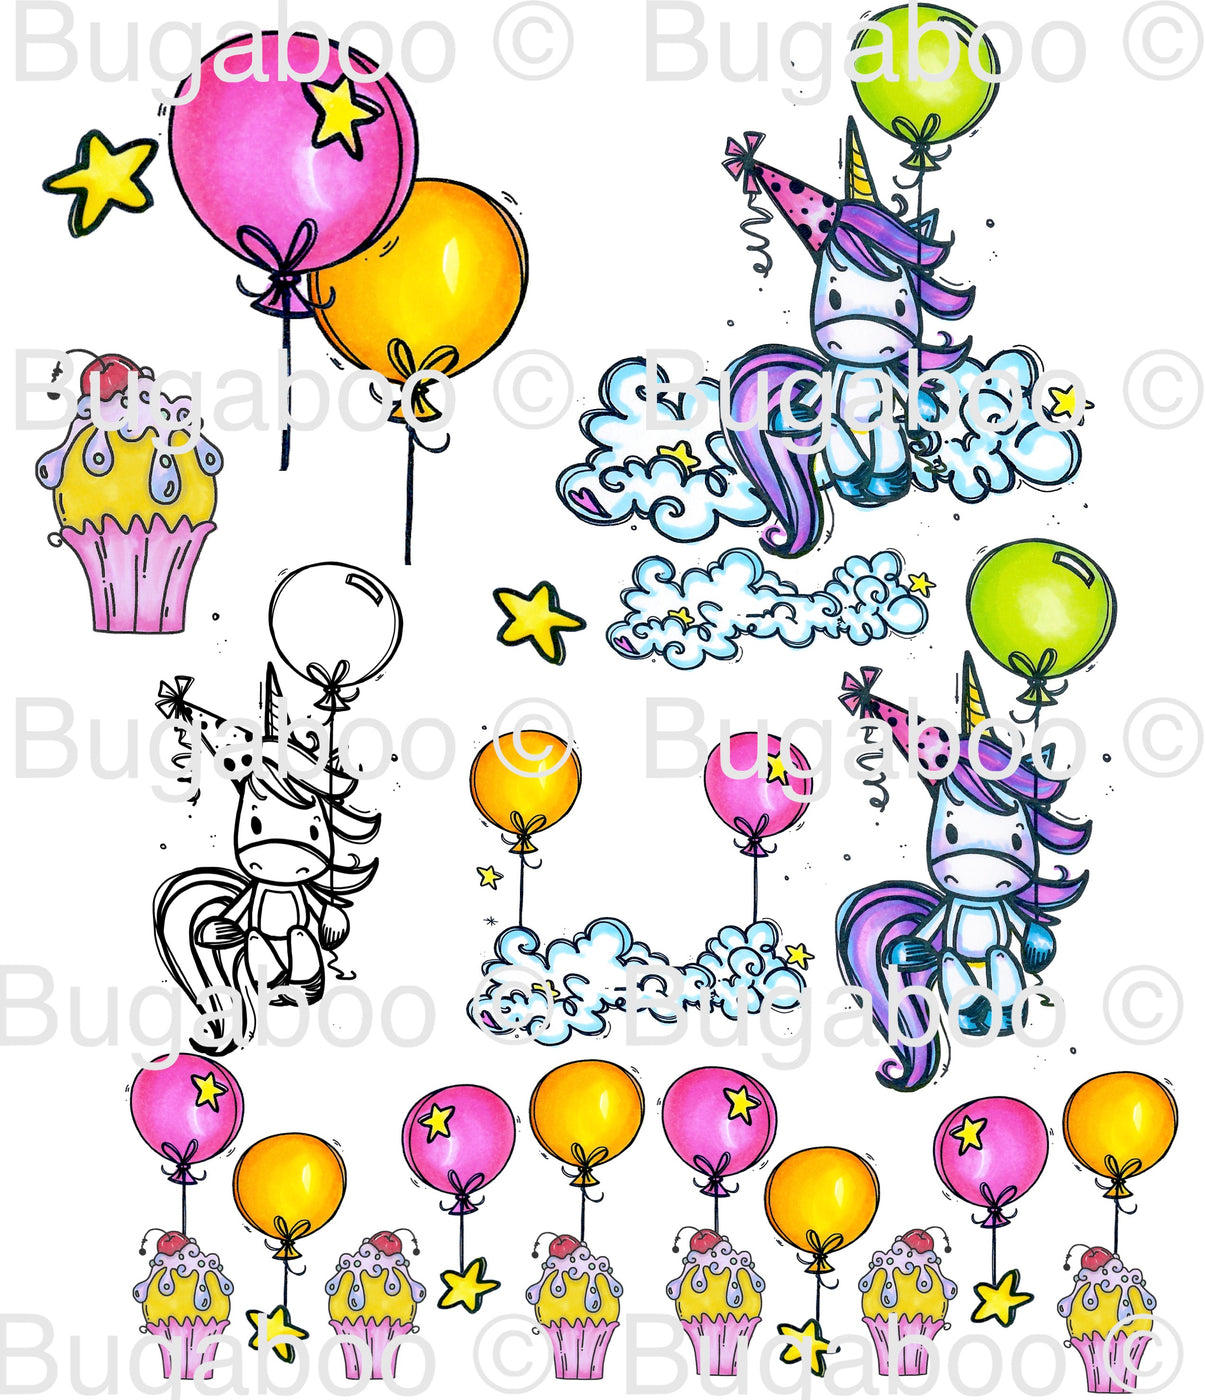 Unicorn Party Digital Stamp [Digi907BG]